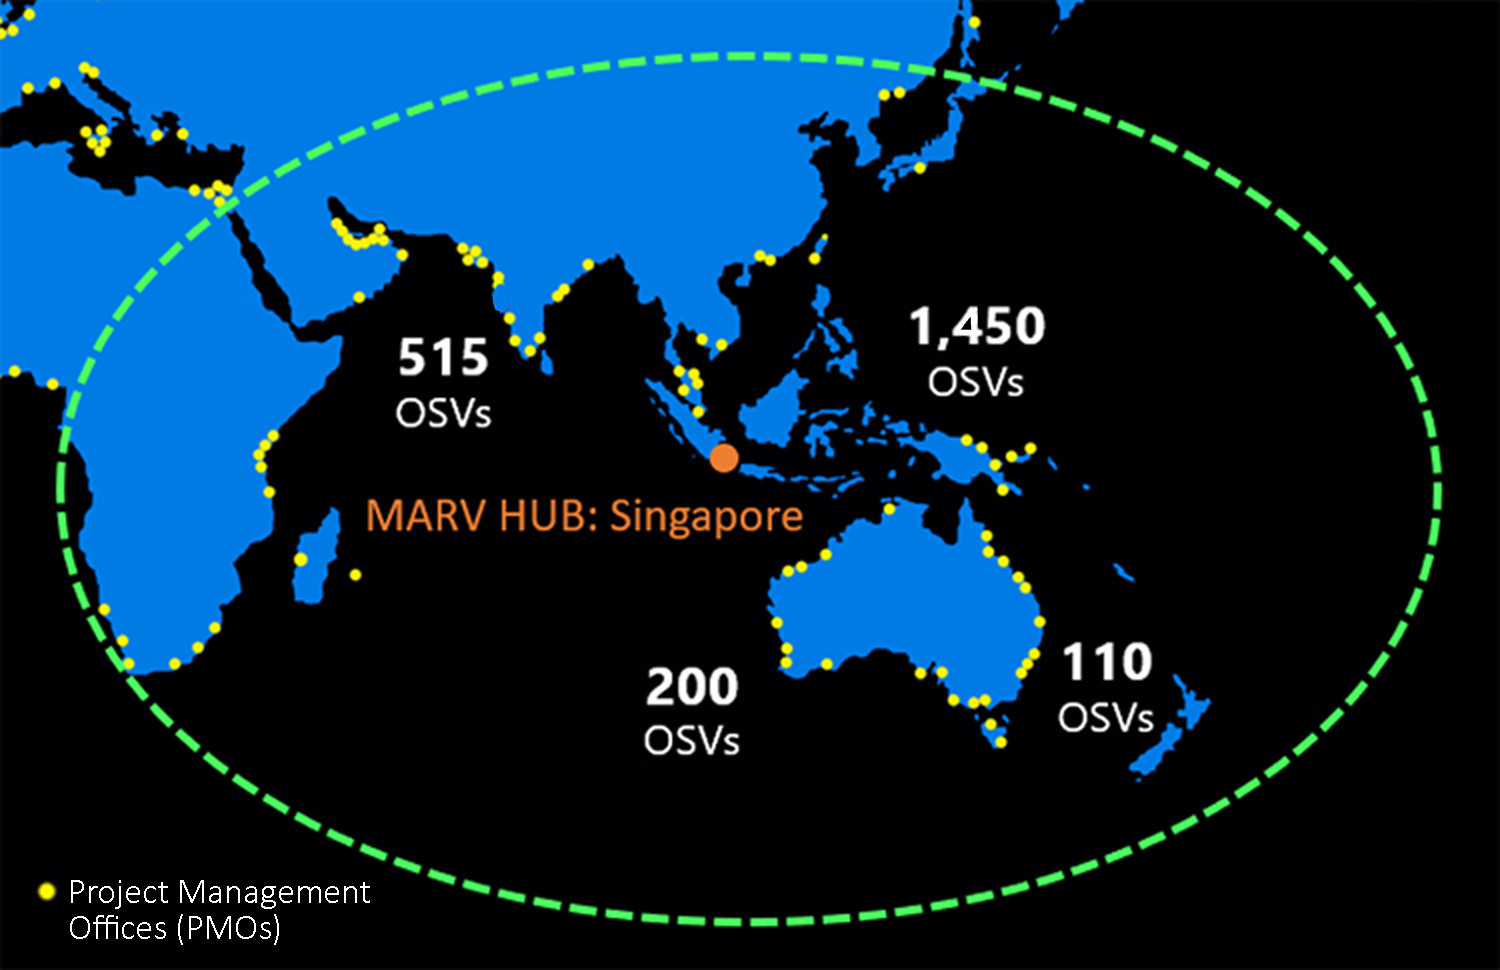 Figure 1: Centralized MARV HUB location supports regional OSV mobilization.